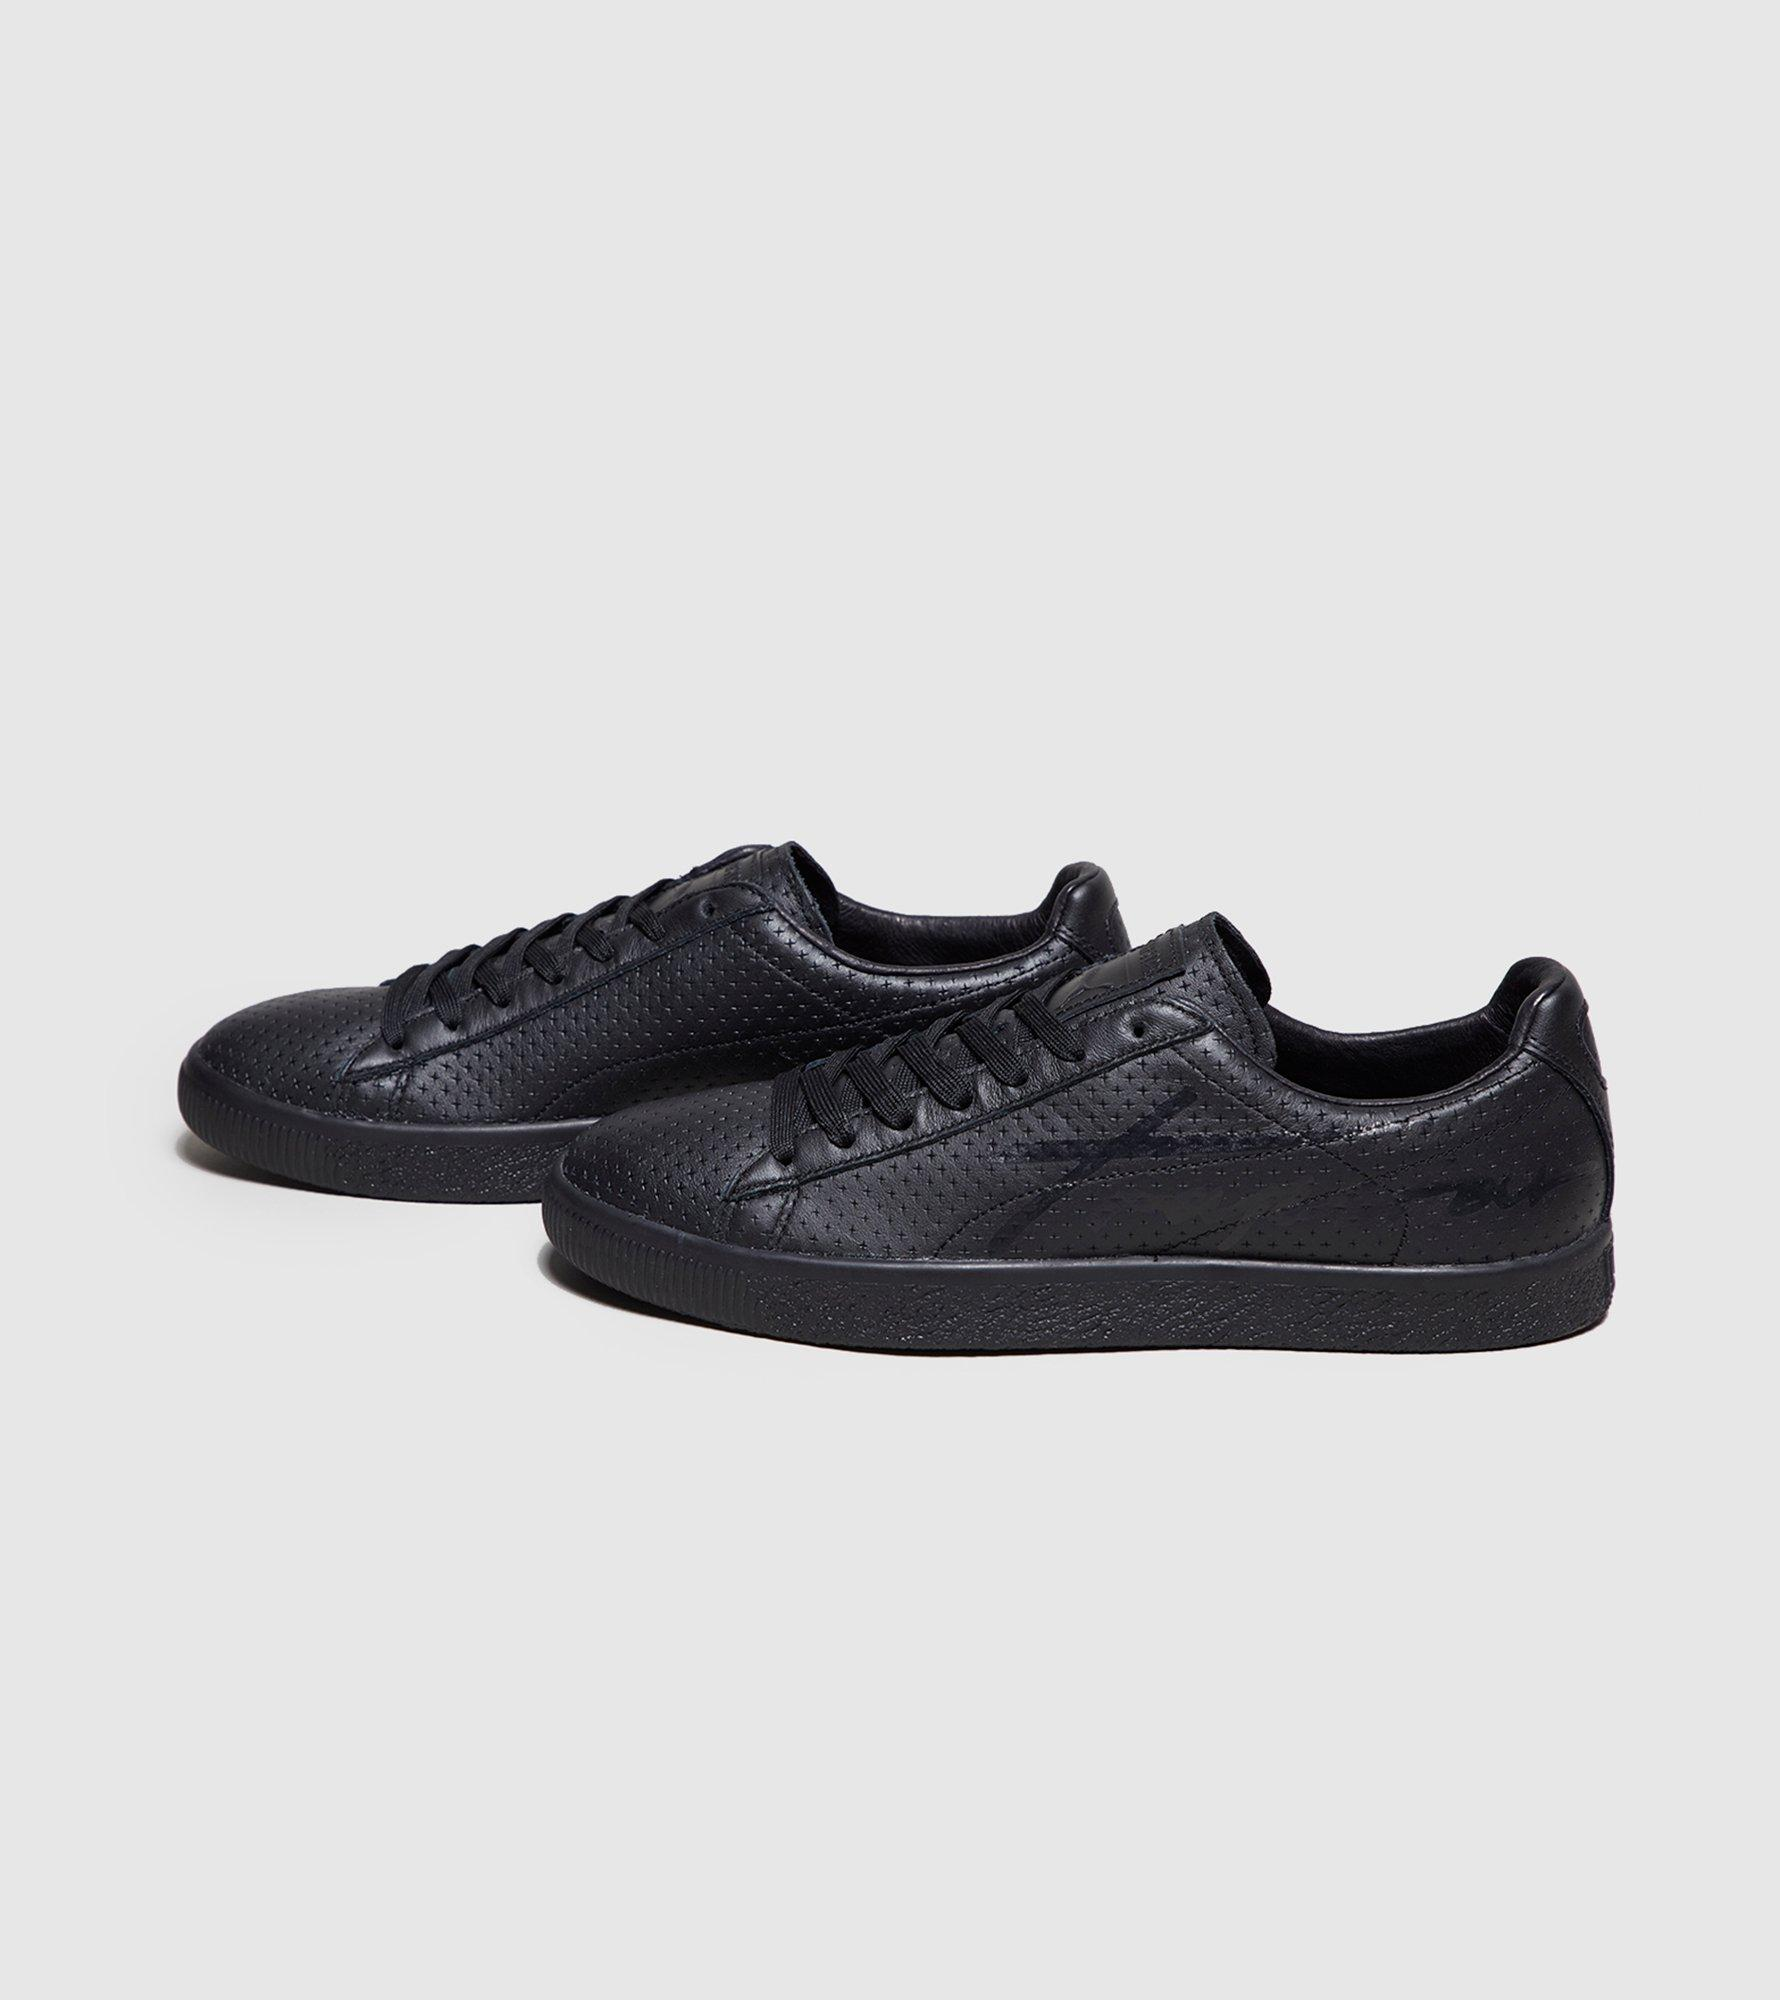 8ca9f47b74152d Lyst - PUMA X Trapstar Clyde Perforated in Black for Men